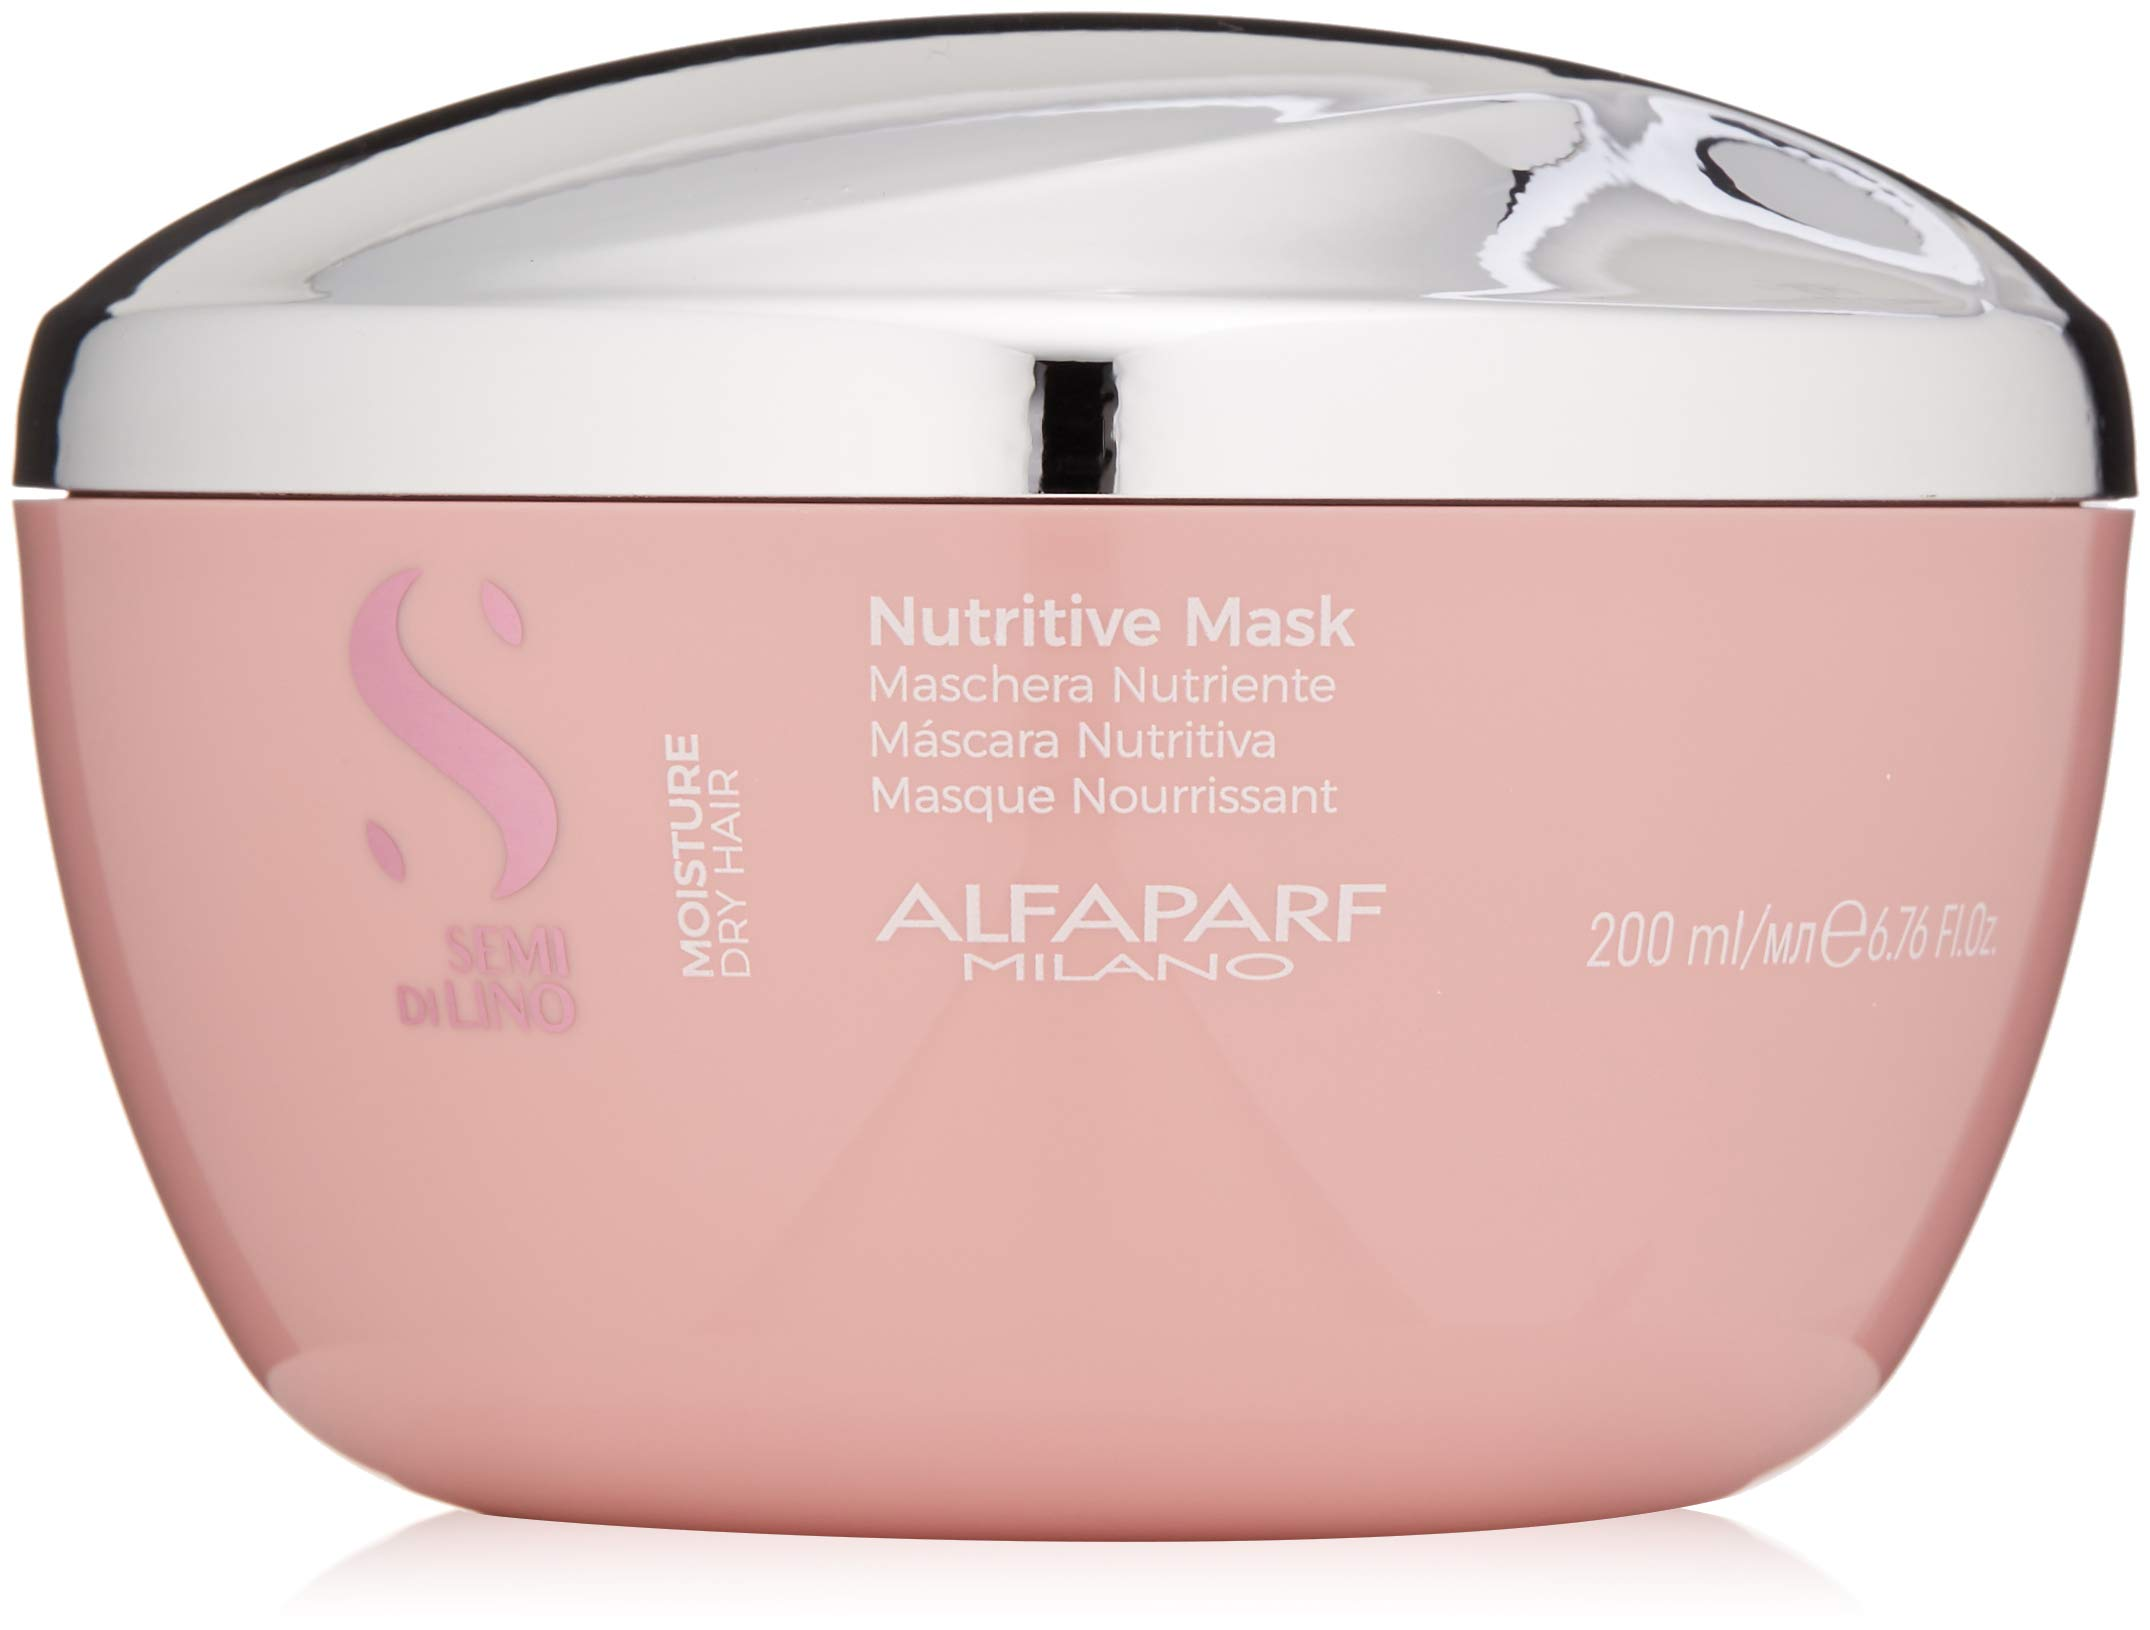 Alfaparf Milano Semi Di Lino Moisture Nutritive Mask for Dry Hair - Safe on Color Treated Hair - Sulfate, SLS, Paraben and Paraffin Free - Professional Salon Quality by Alfaparf Milano